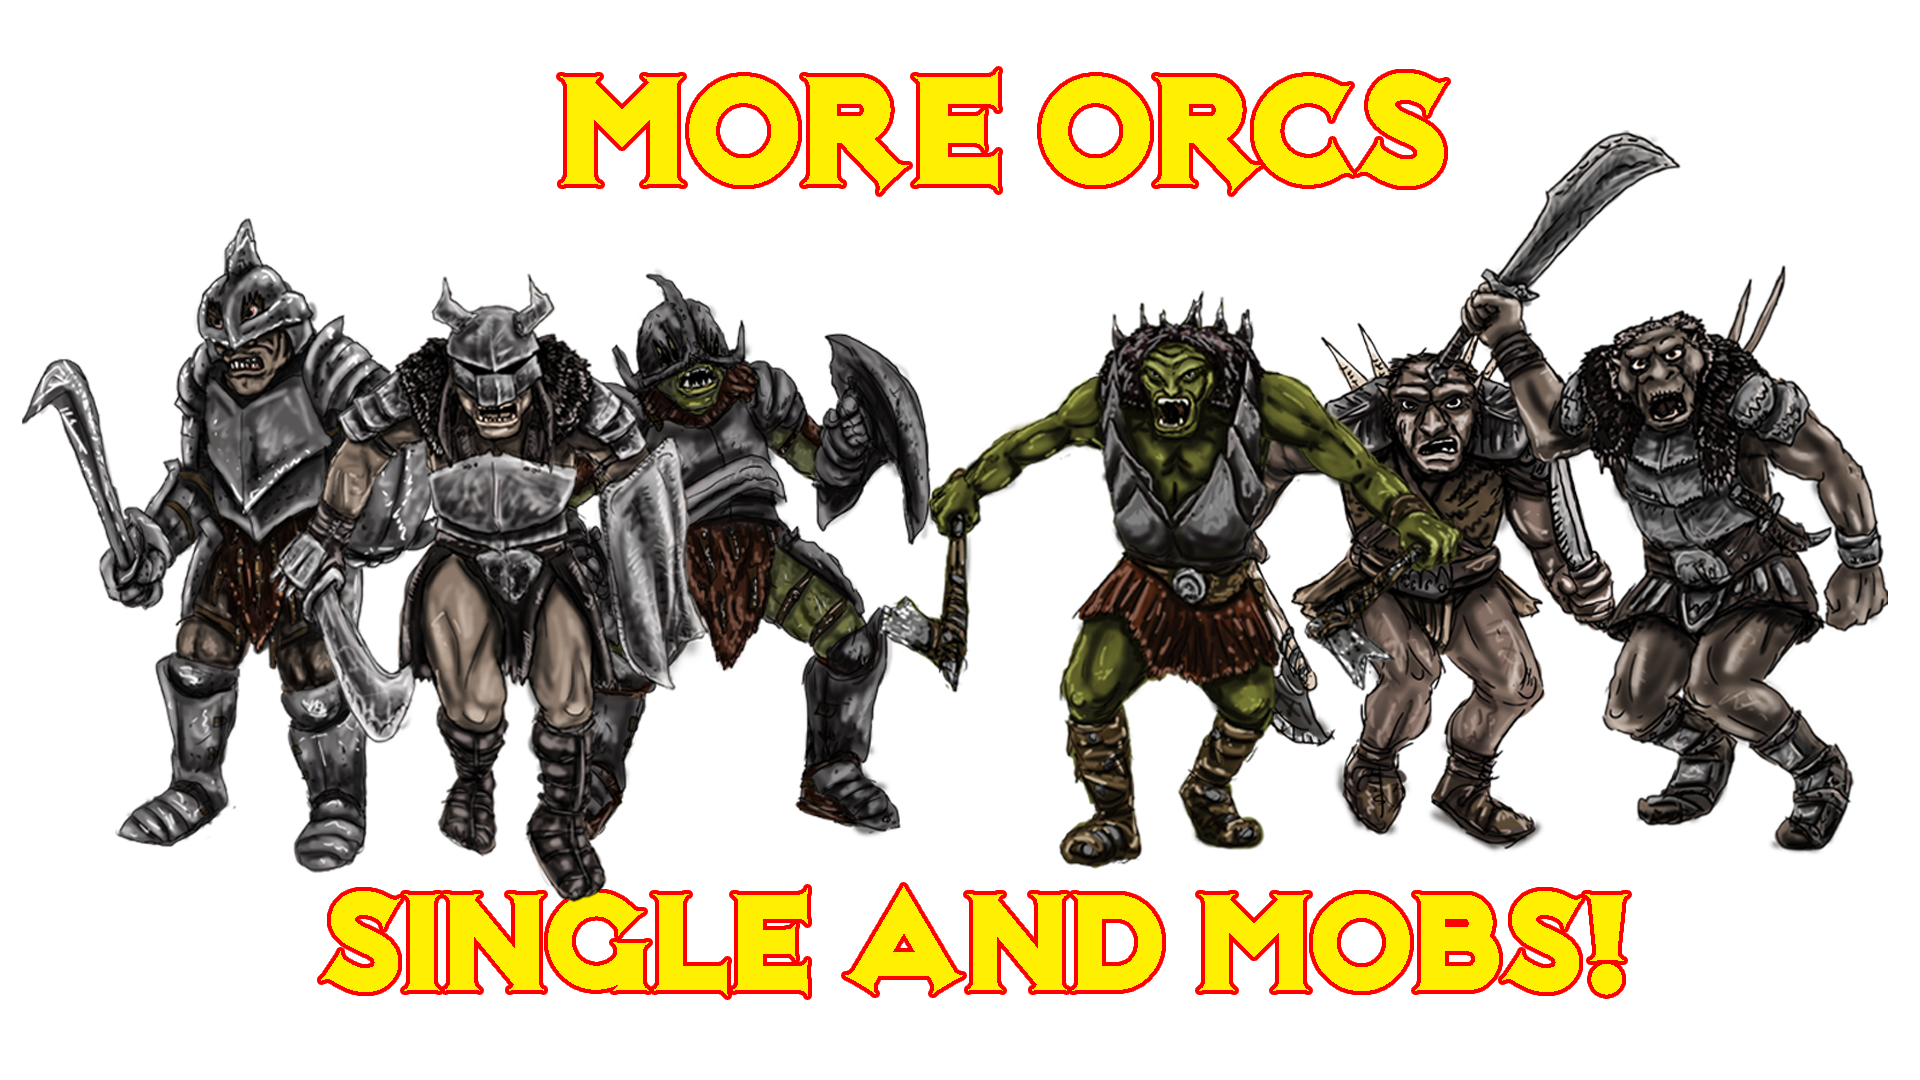 018 More Orcs